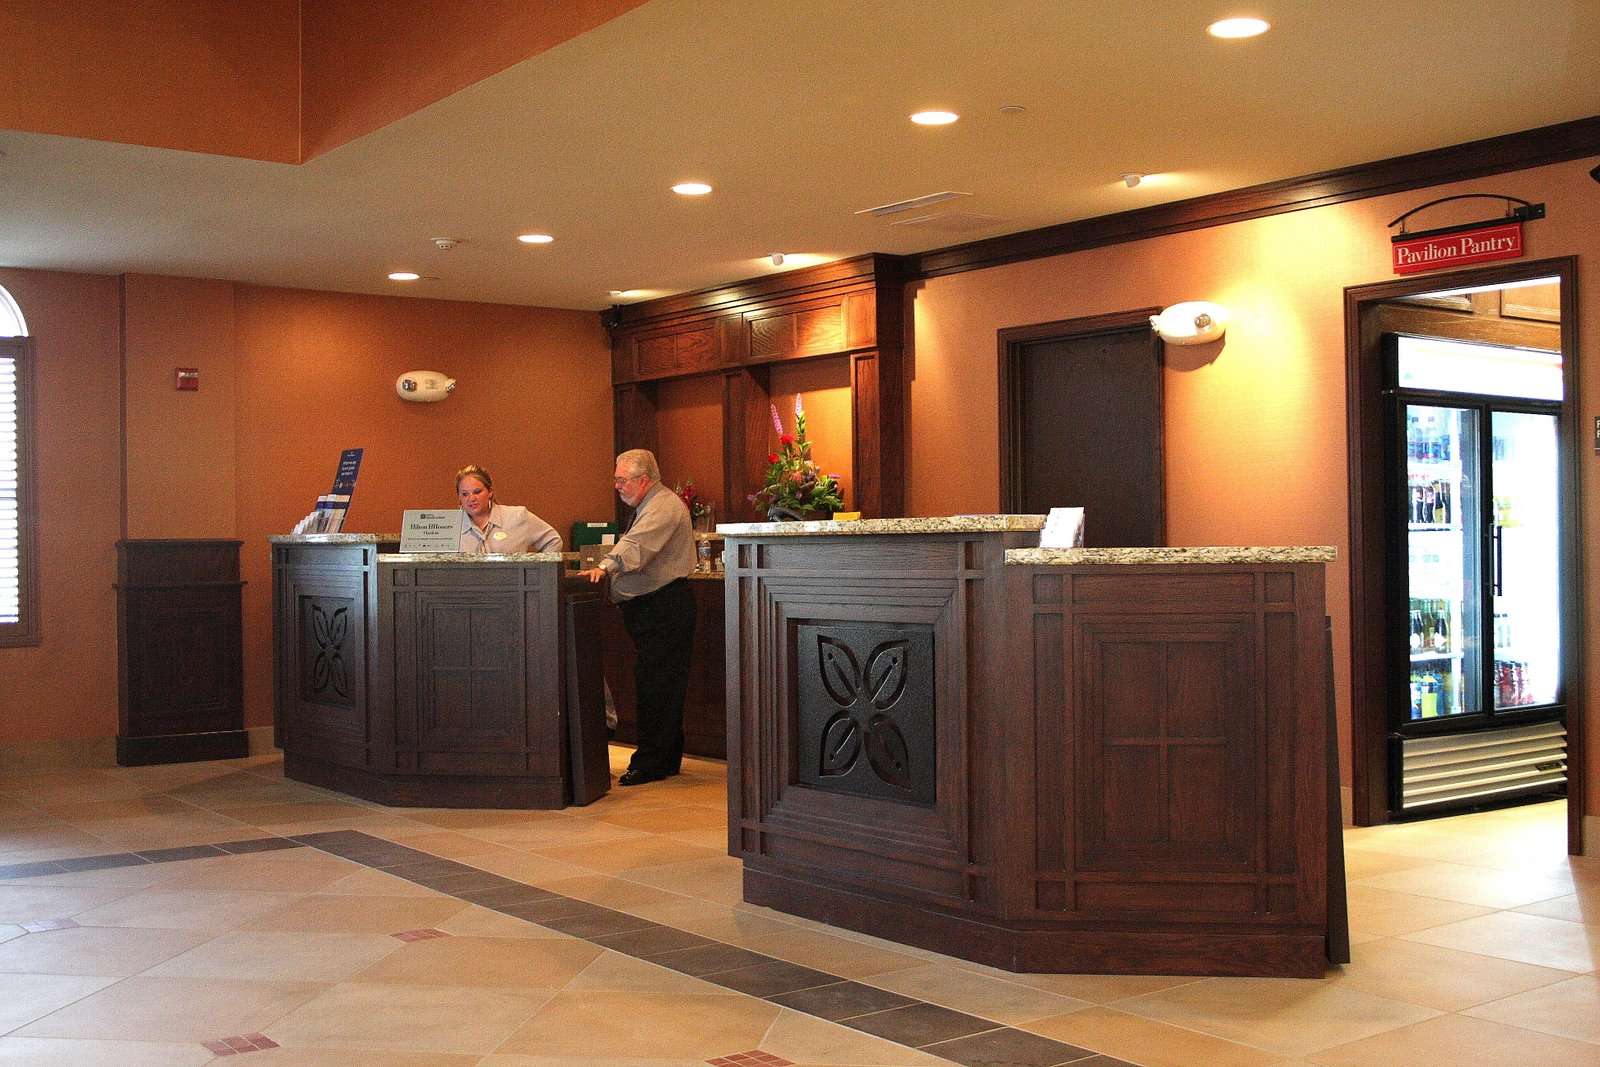 High end hotel millwork hilton garden inn granbury for High end hotels